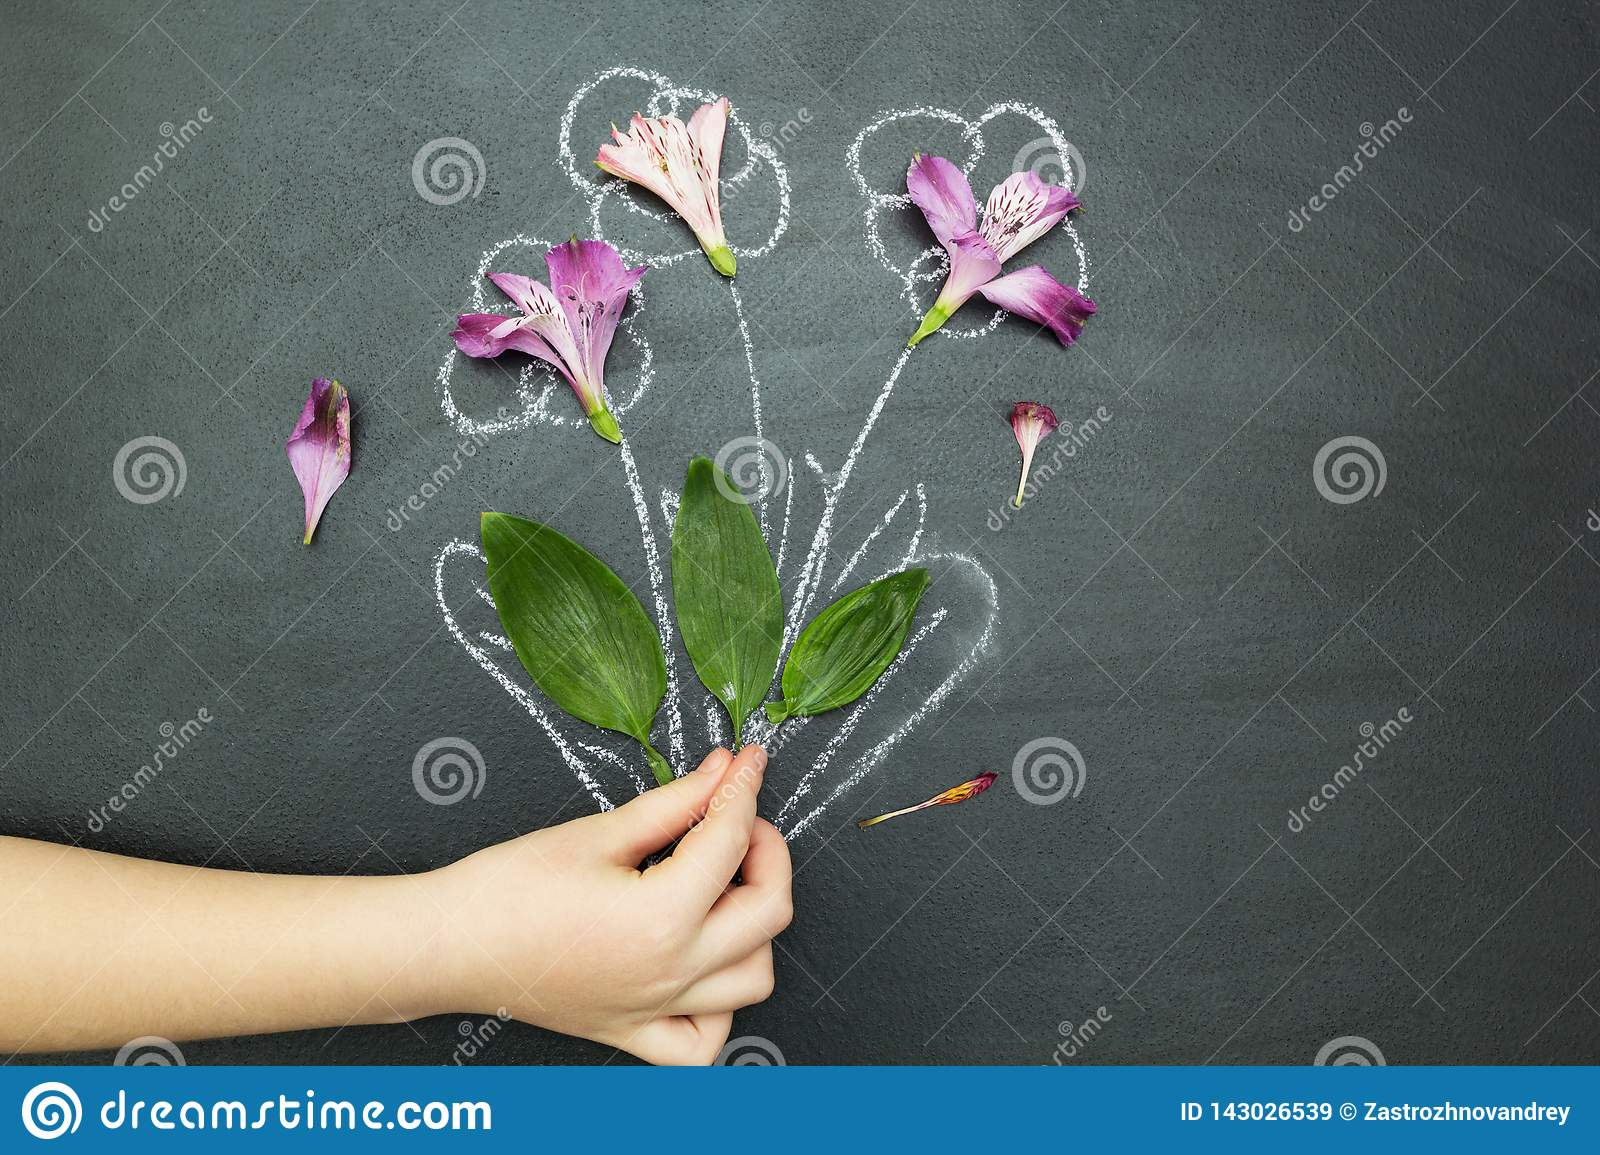 Bouquet in hand on a black background